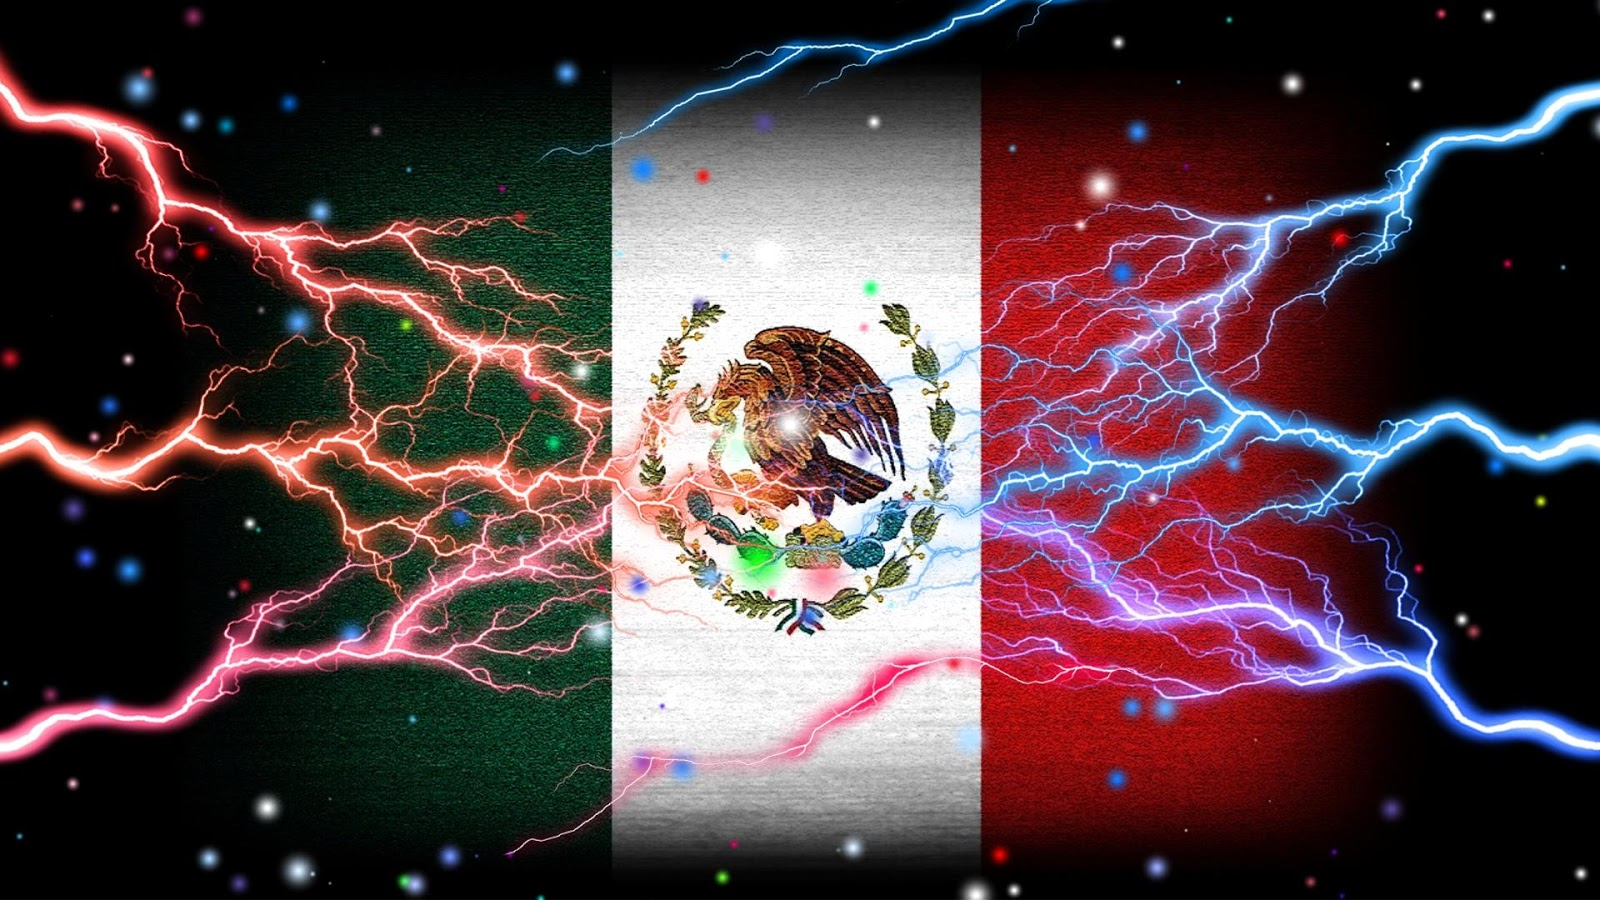 Mexico Flag Wallpaper   Android Apps on Google Play 1600x900